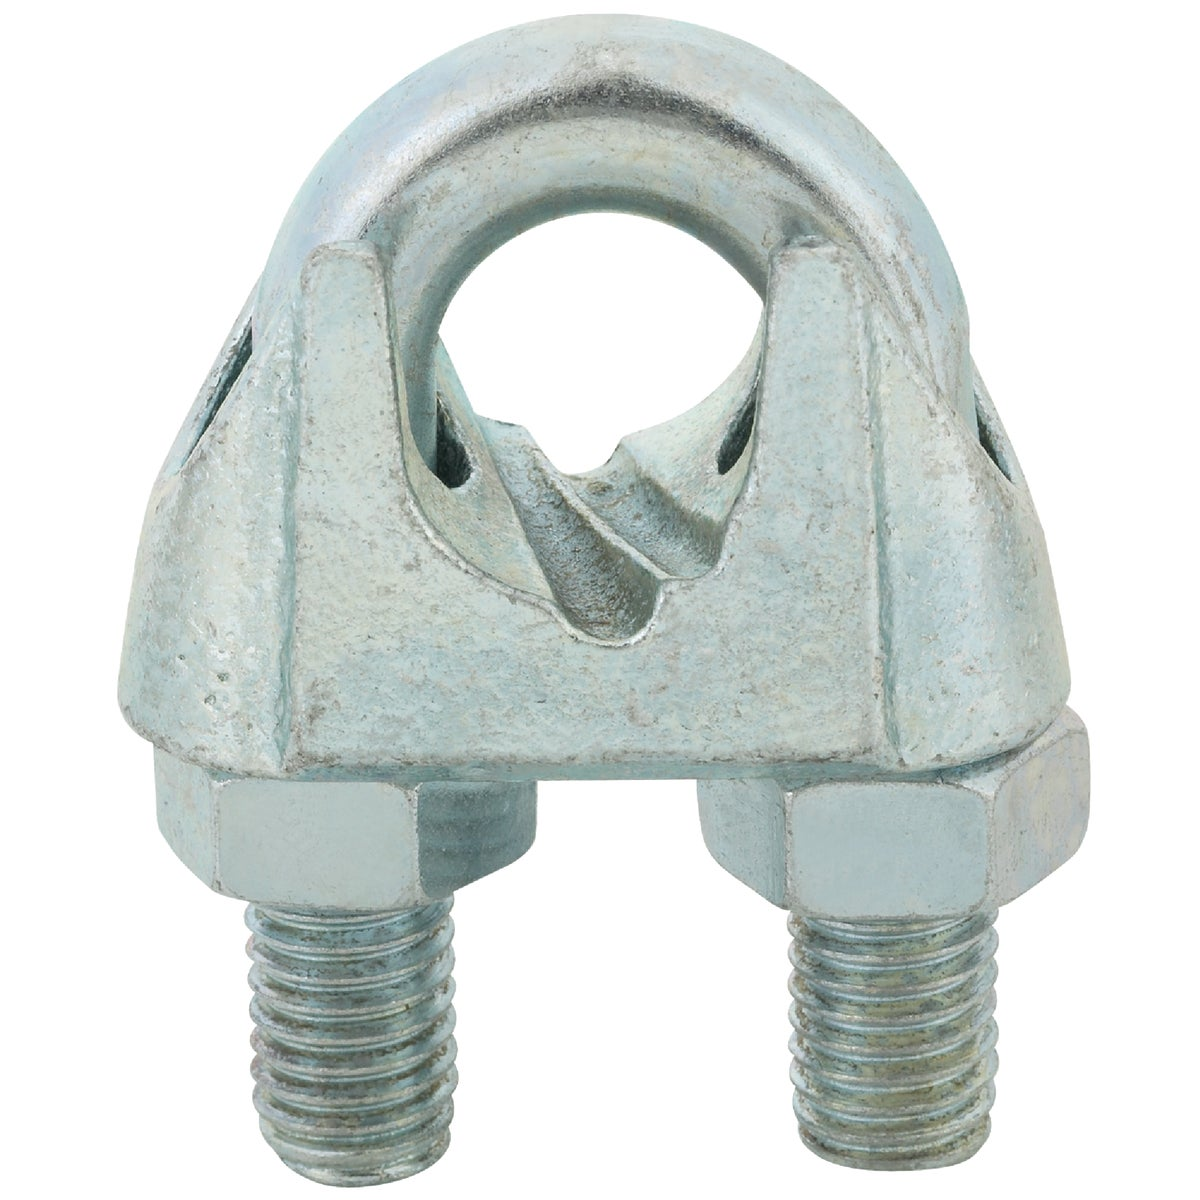 "3/4"" WIRE ROPE CLIP - T7670499 by Cooper Campbell Apex"